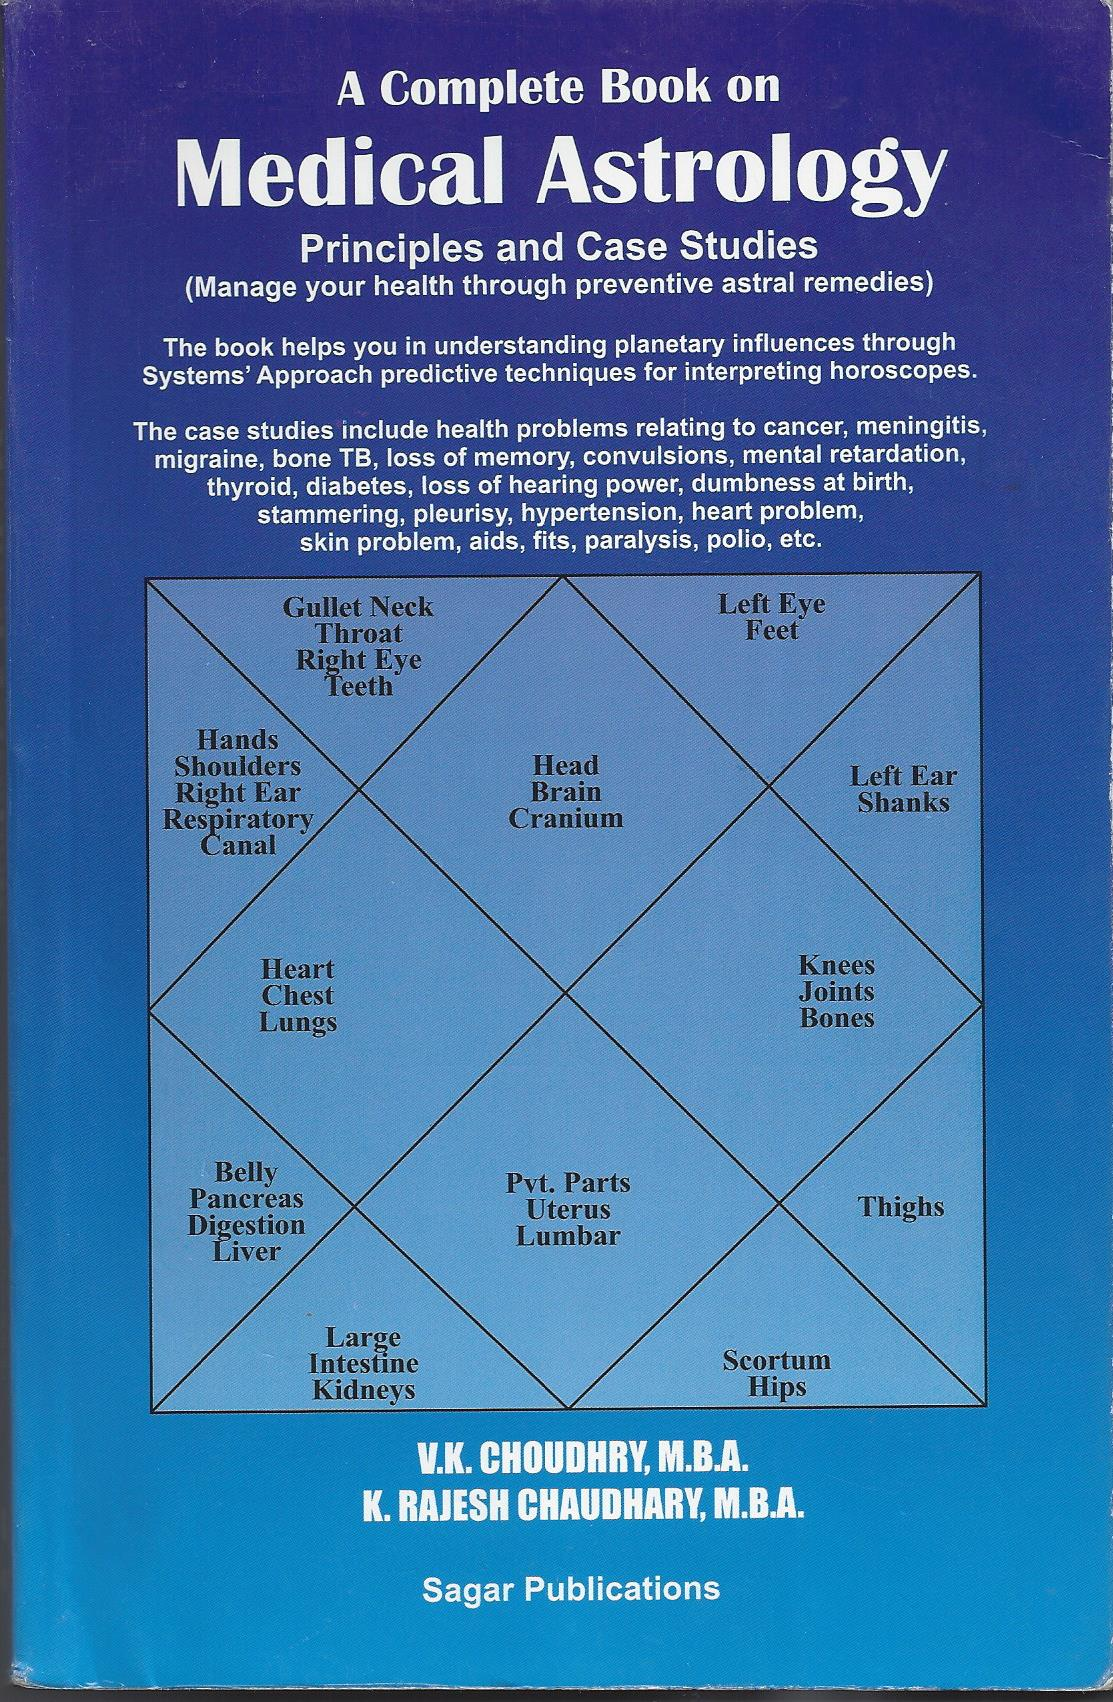 Medical Astrology (Manage your health through preventive astral remedies)